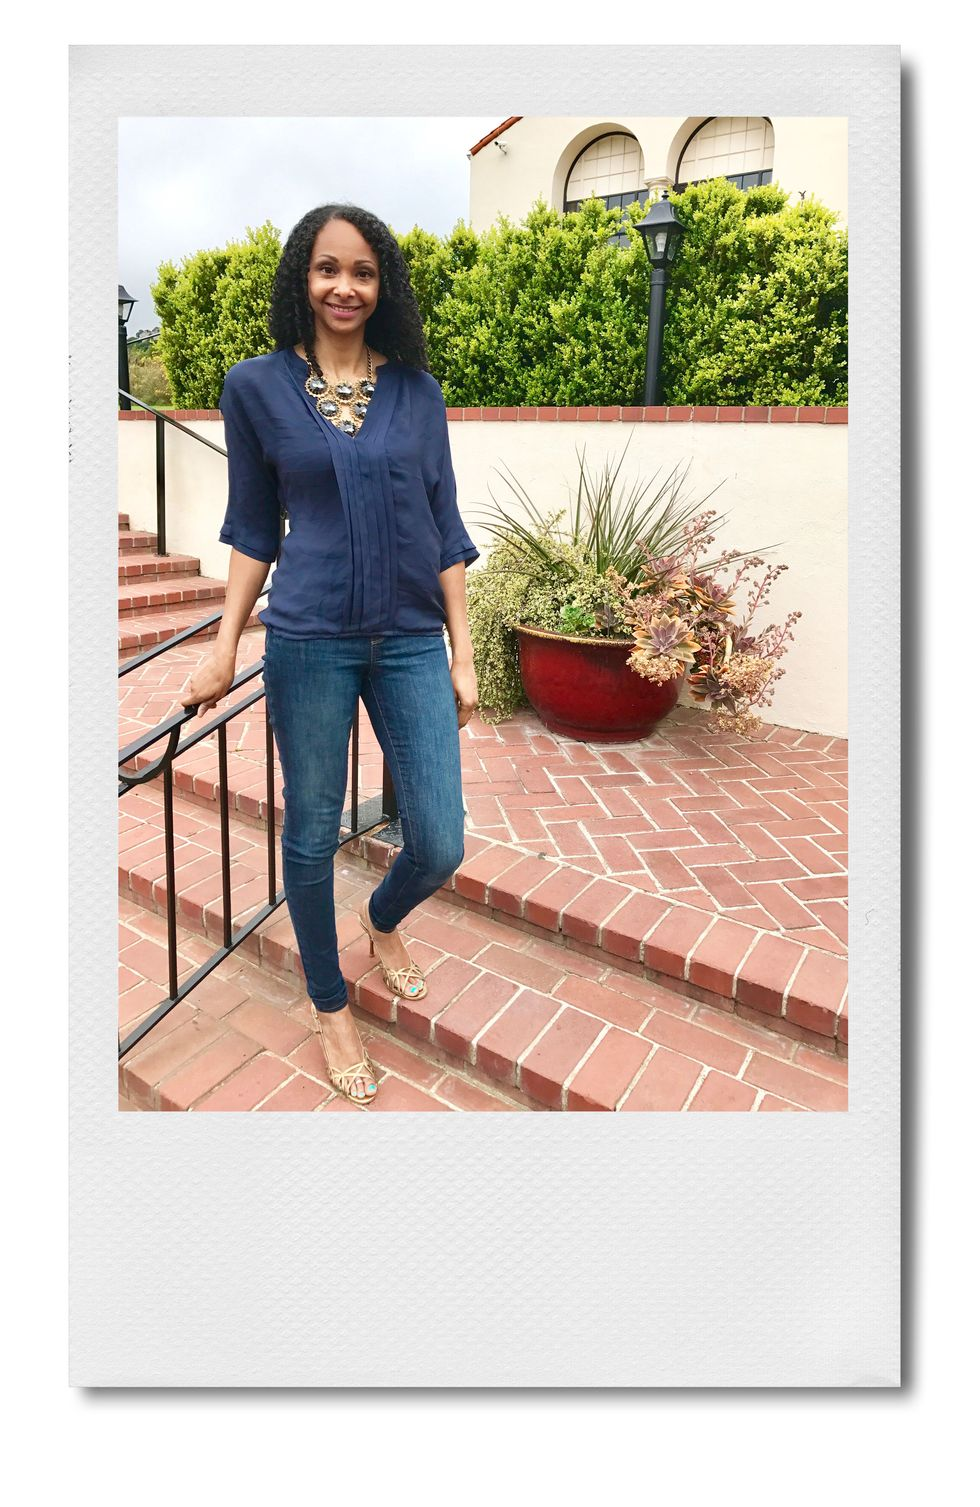 """Bari A. Williams, Head of Operations at StubHub """"There's a famous saying about the surprising temperature of summers in San Francisco: 'The coldest winter I ever spent was a summer in San Francisco.' It's true! Summer averages around 68 degrees and offices are blasting AC inside, which still calls for lightweight denim and a light blouse. This is totally desk to date. Tech is casual, so anything more than this and I'd look out of place. I like to use accessories to dress an outfit up or down, for a presentation, or to meet my husband after work for a date night."""""""